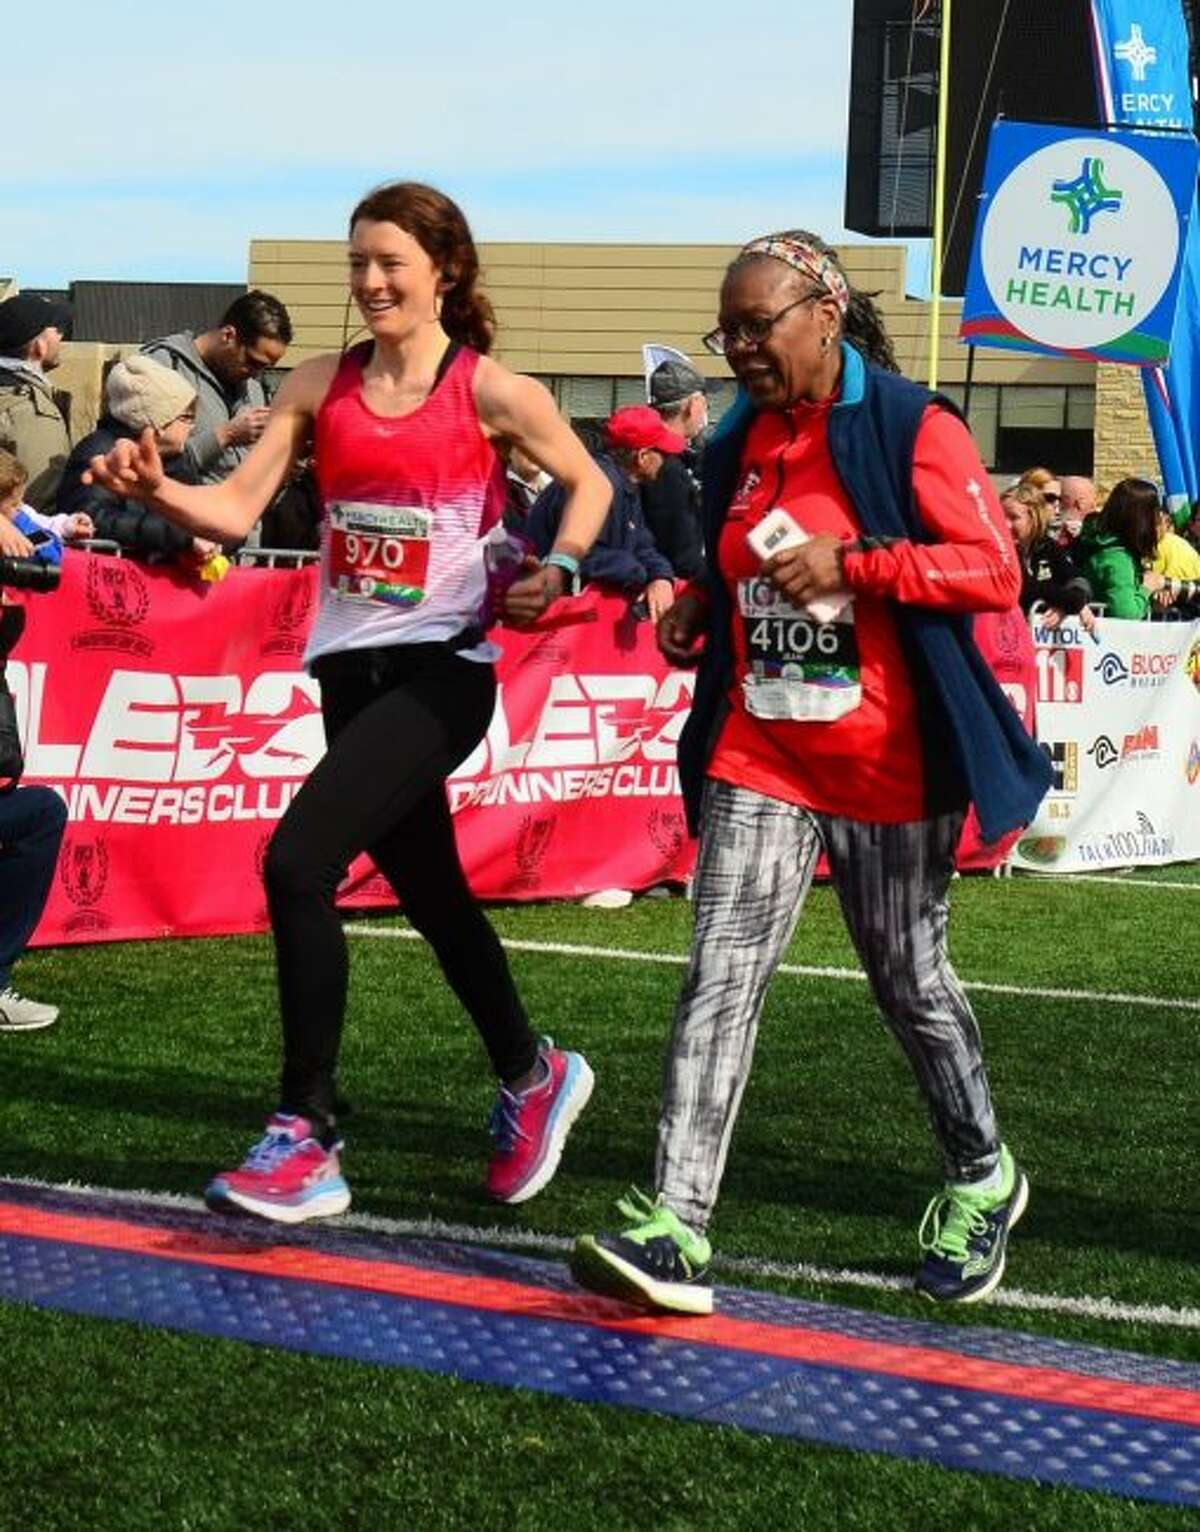 At left, Chantel Wright, 30, of Stanwood, is pictured running in the 2018 Mercy Health Glass City Marathon in Toledo, Ohio. Wright's time at the event qualified for the Boston Marathon, which she will run in on Monday. (Courtesy photo)